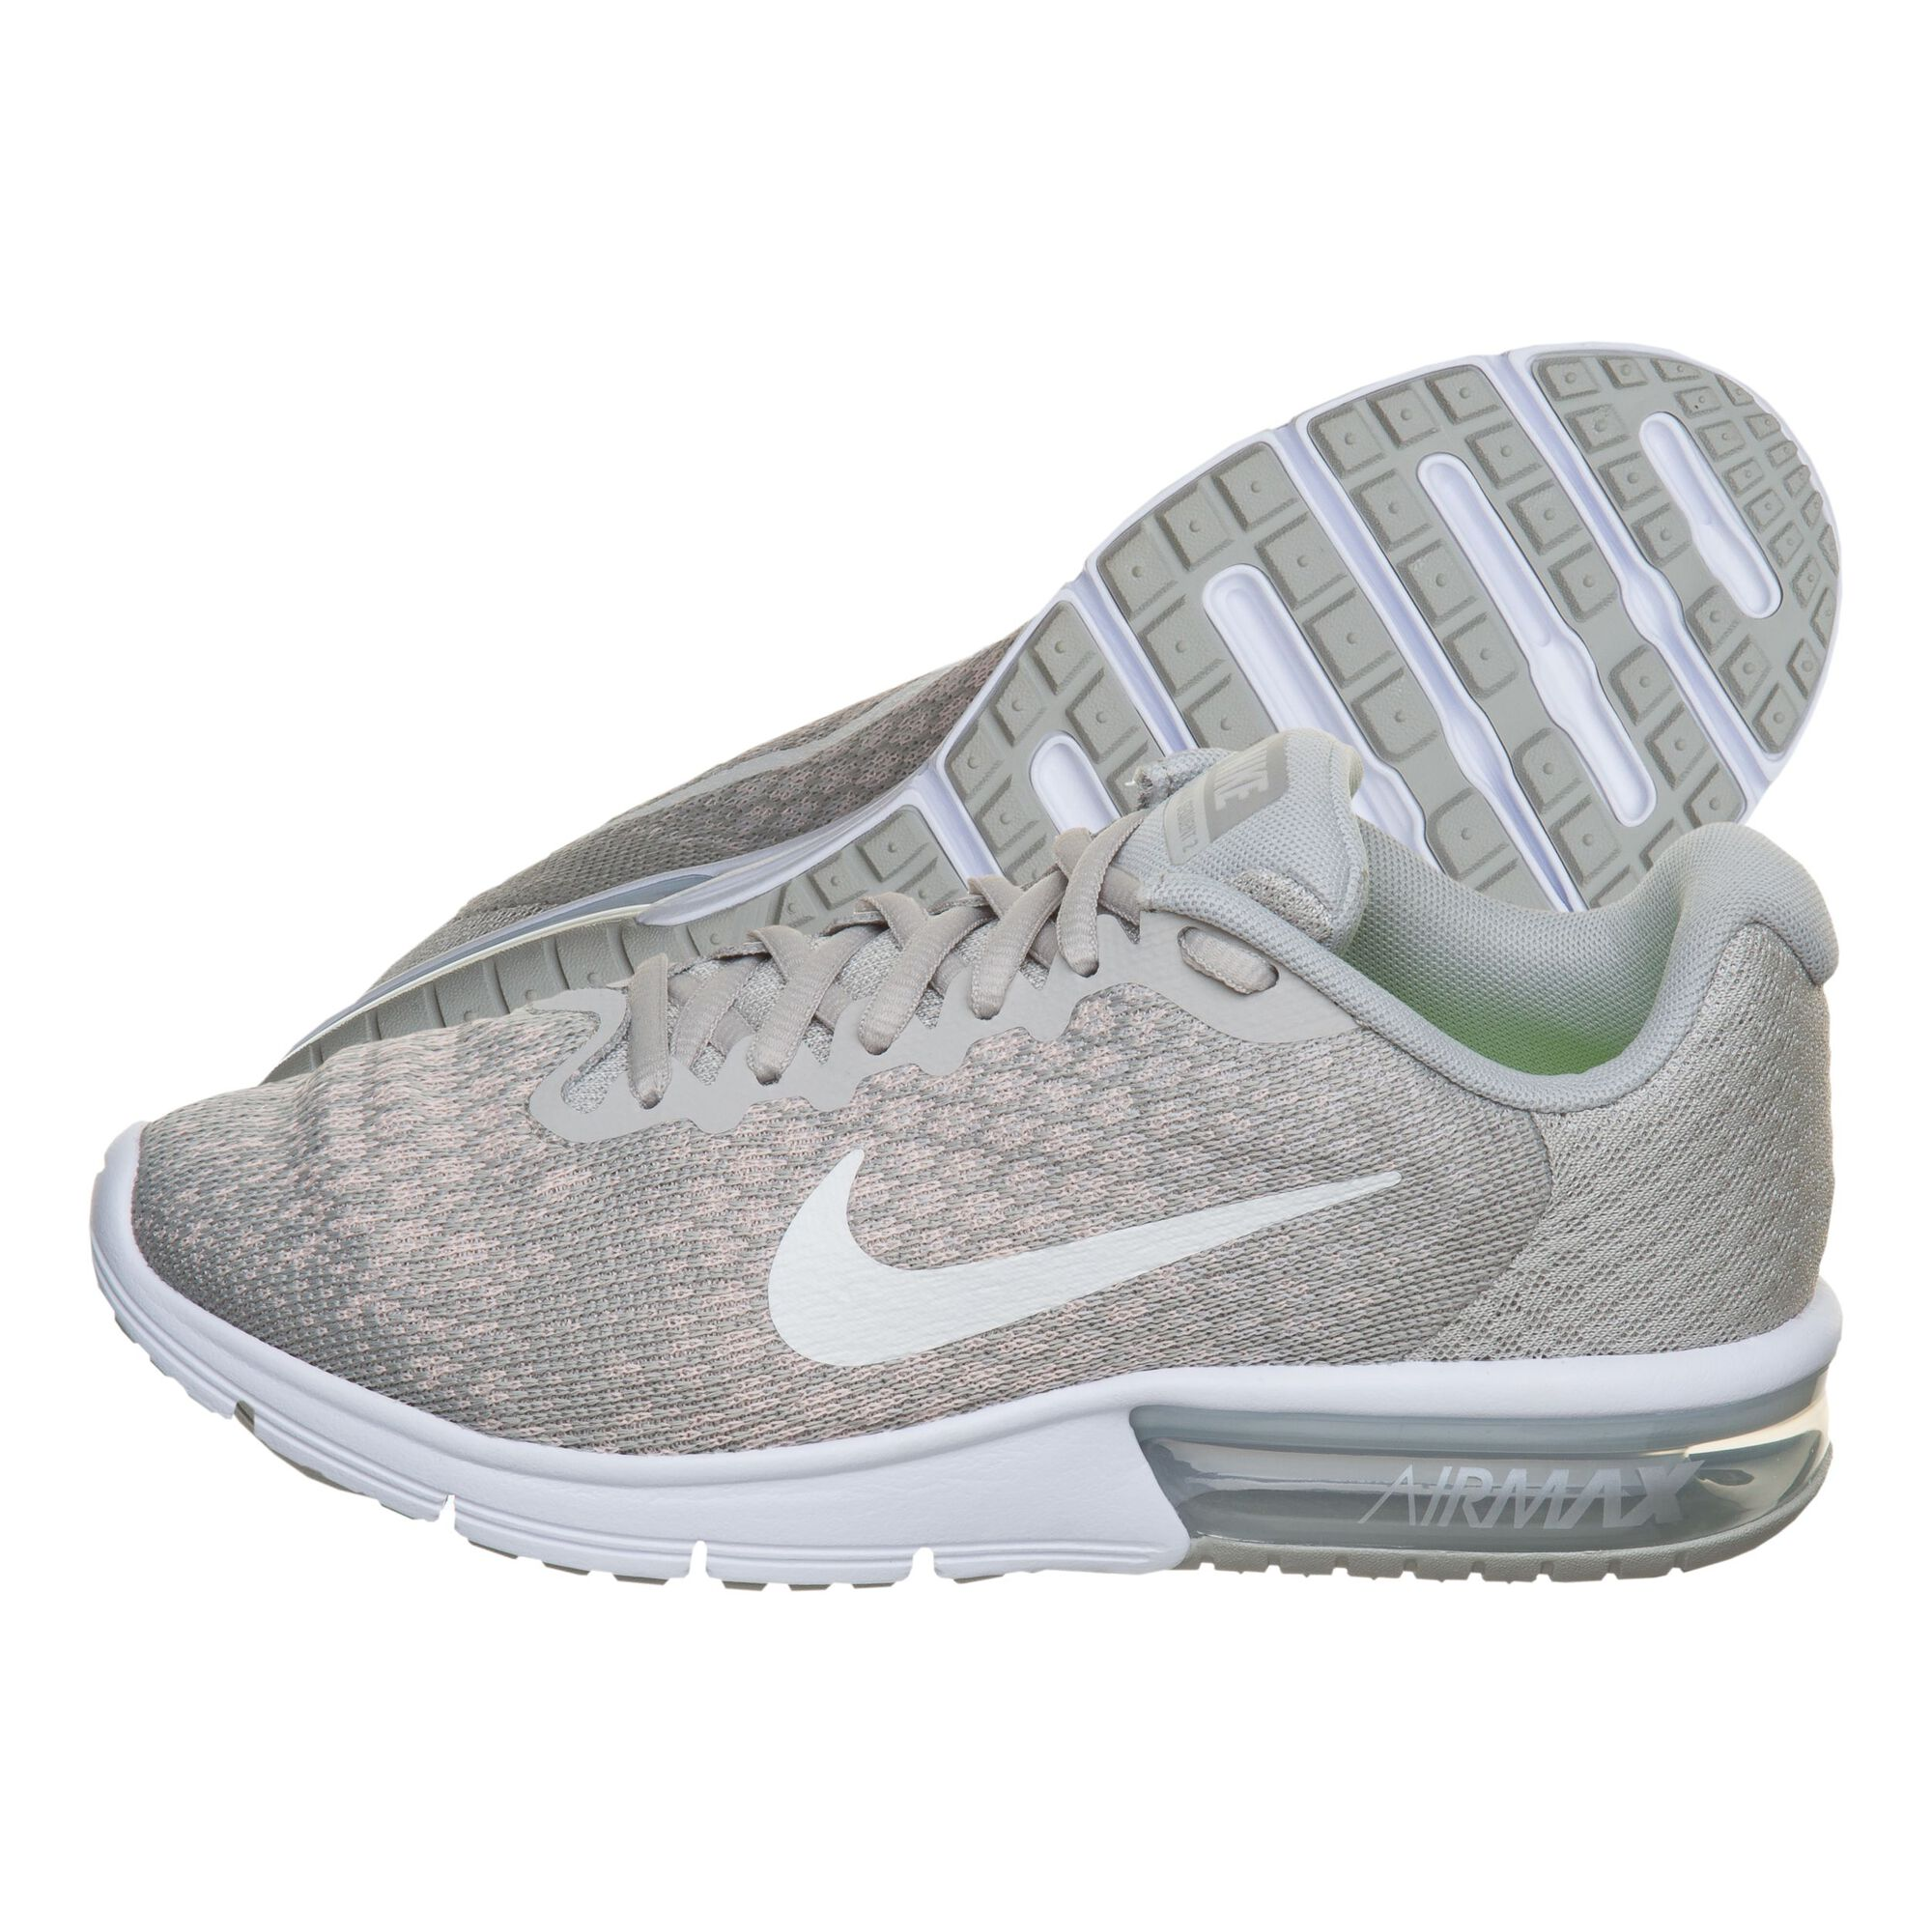 f578d8a0abe82 buy Nike Air Max Sequent 2 Neutral Running Shoe Women - Beige, White ...